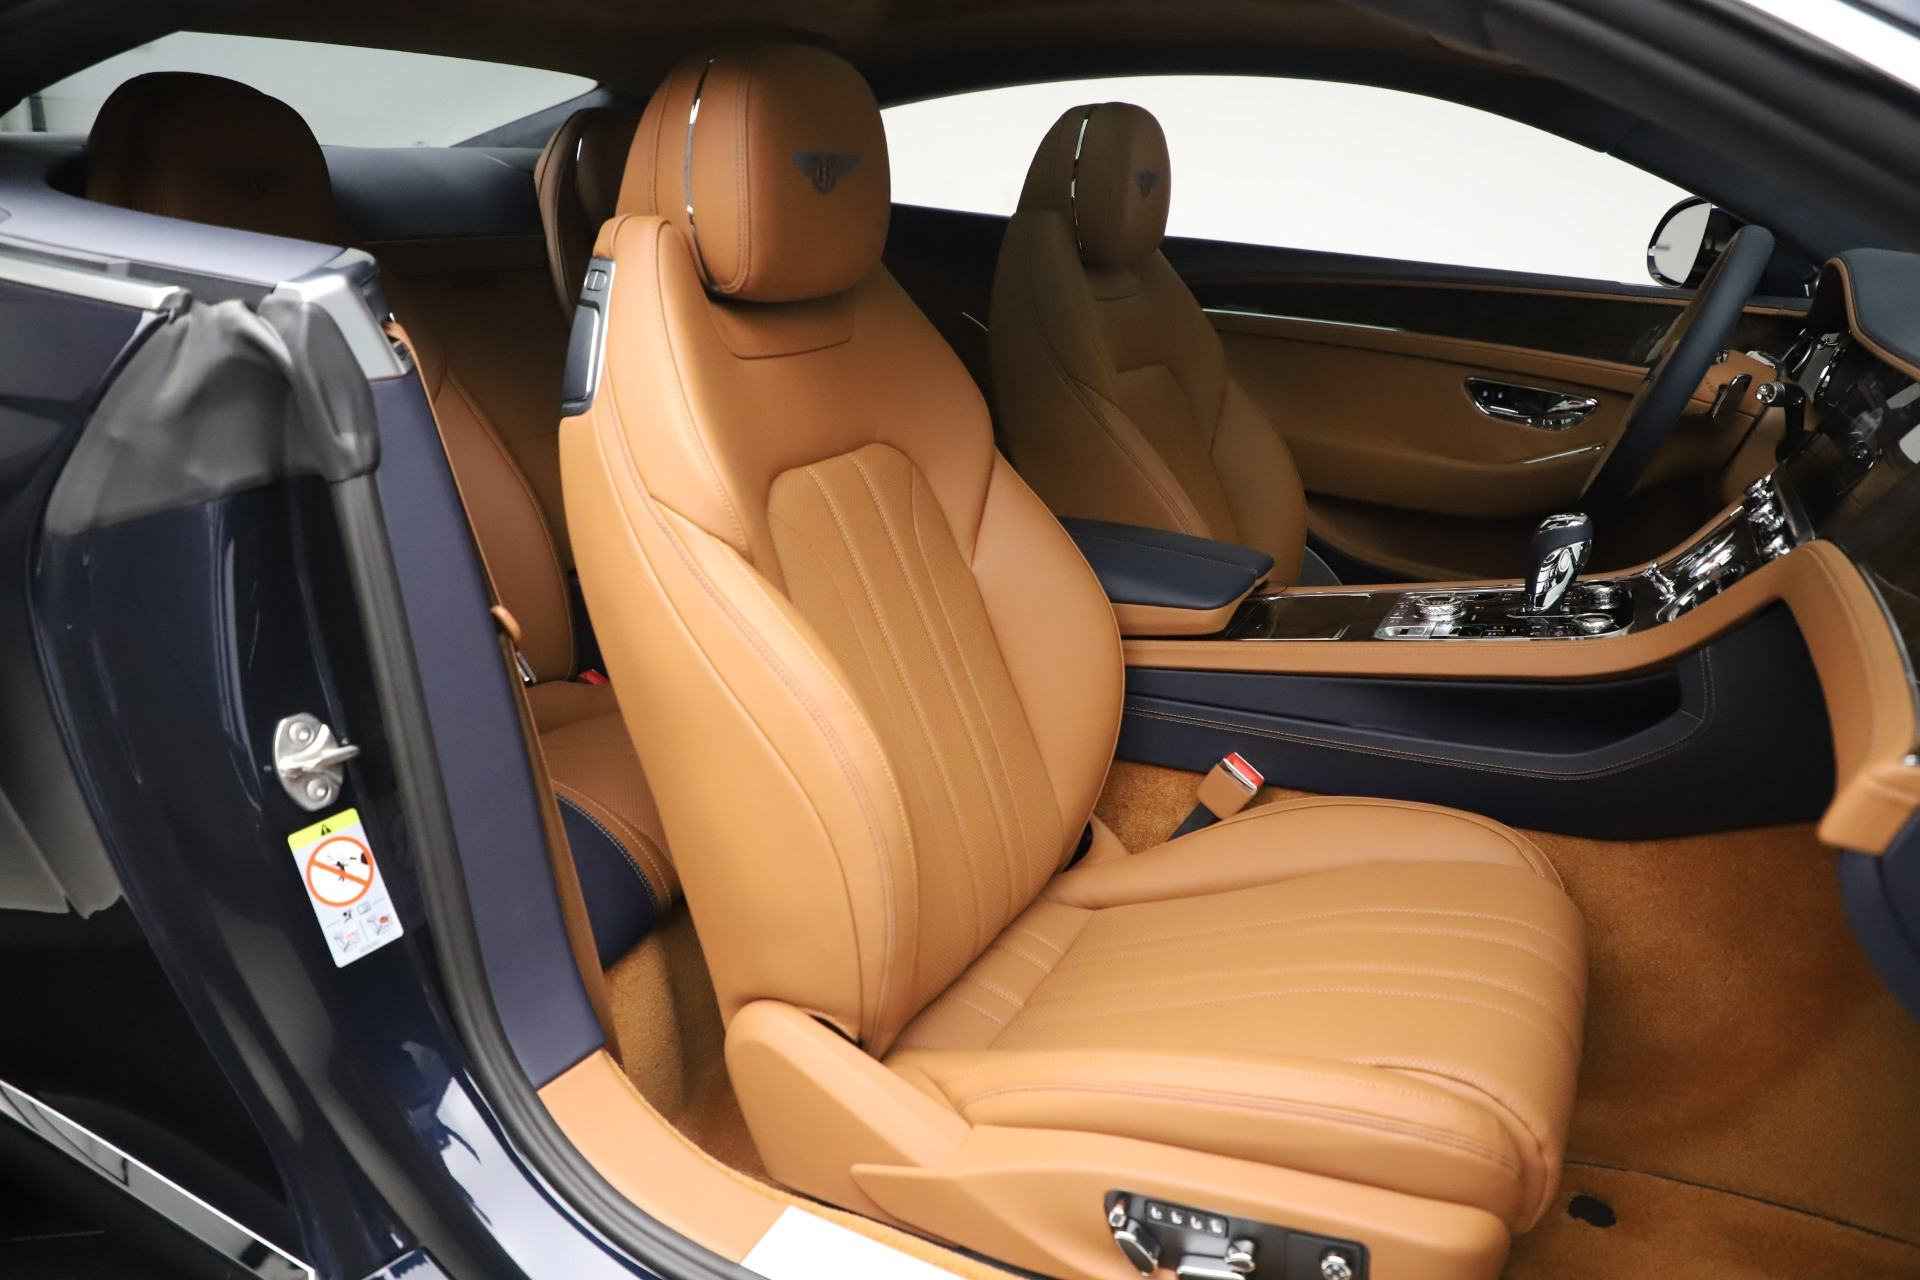 Bentley-Continental-GT-W12-Coupe-2020-2021-Muaxegiatot-vn-1